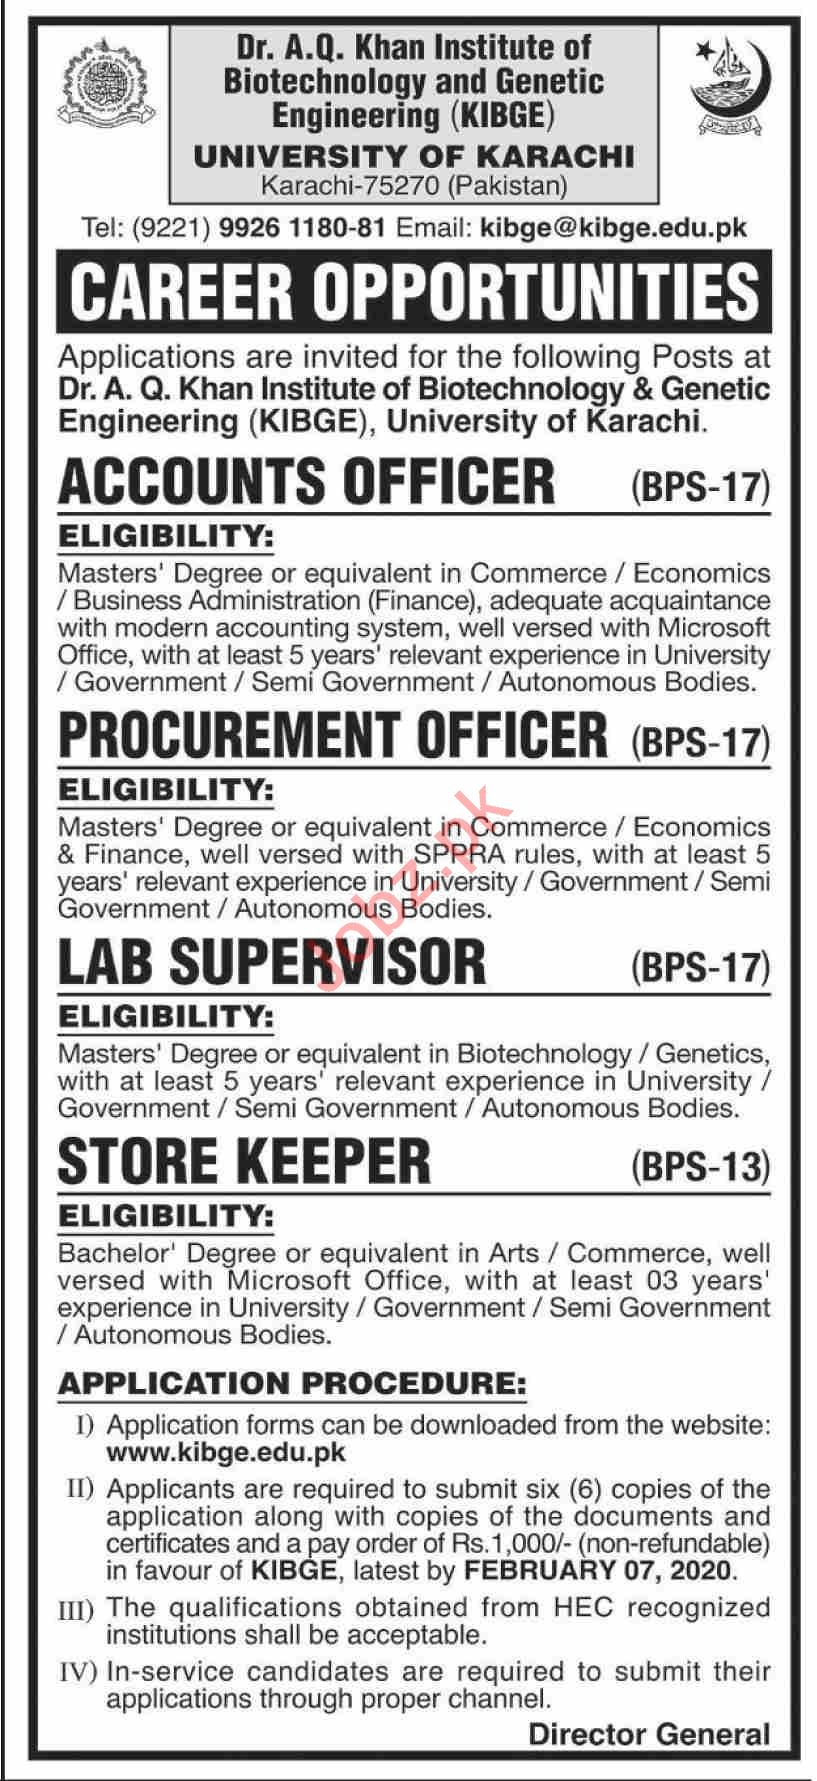 KIBGE University of Karachi Jobs 2020 for Accounts Officer